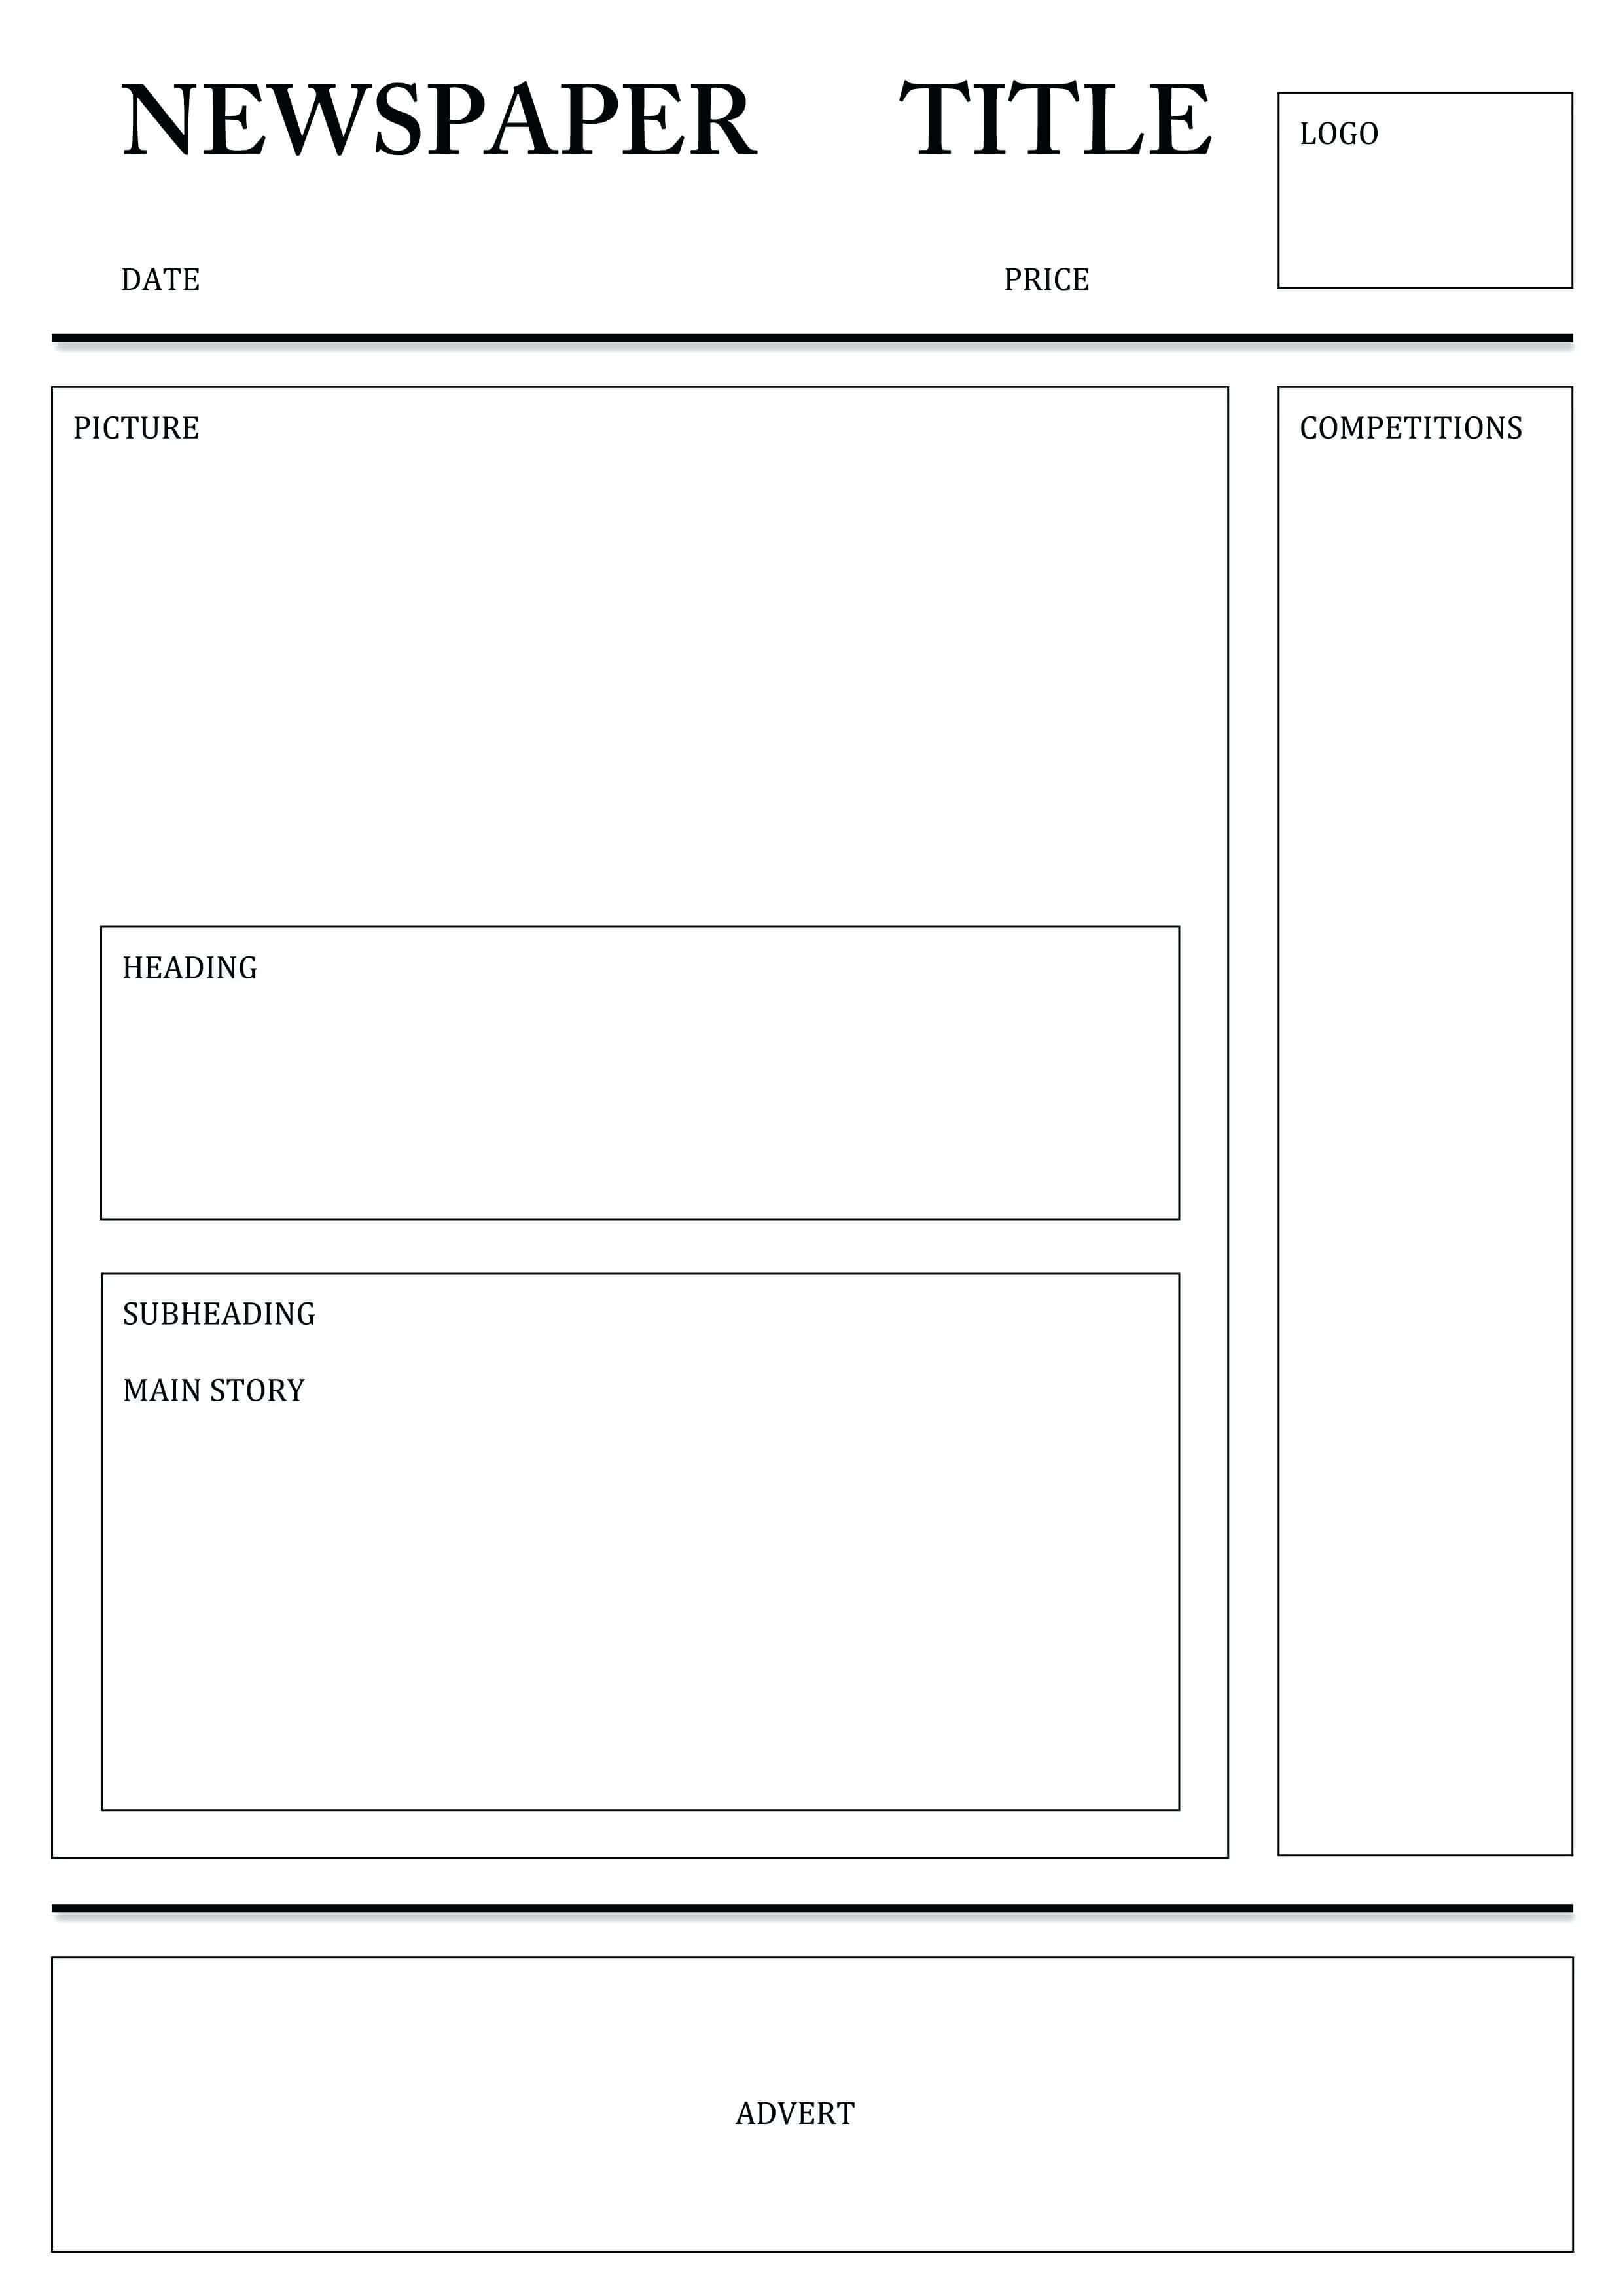 Newspaper Template For Word Pdf Excel | Printable Templates With Blank Newspaper Template For Word